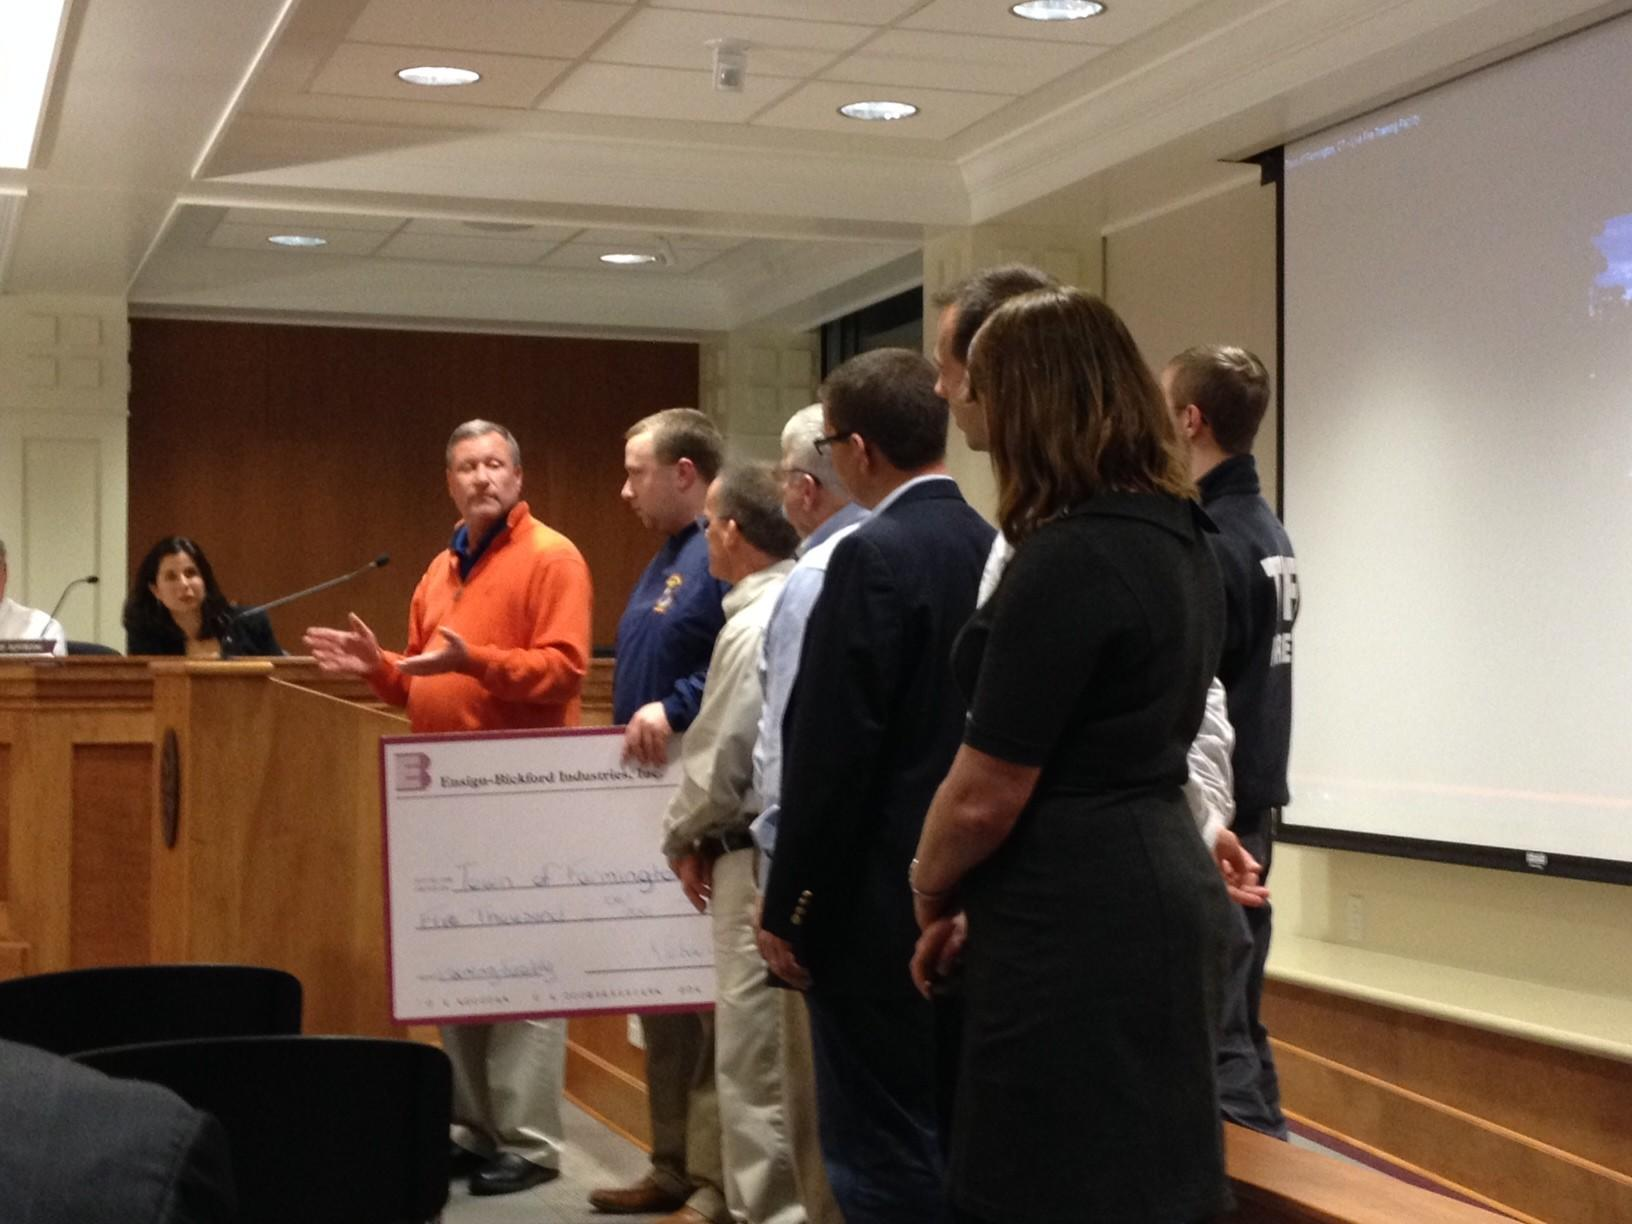 The fire department at a recent town council meeting received a check for $5,000 from the Ensign-Bickford Foundation for a live fire training facility.